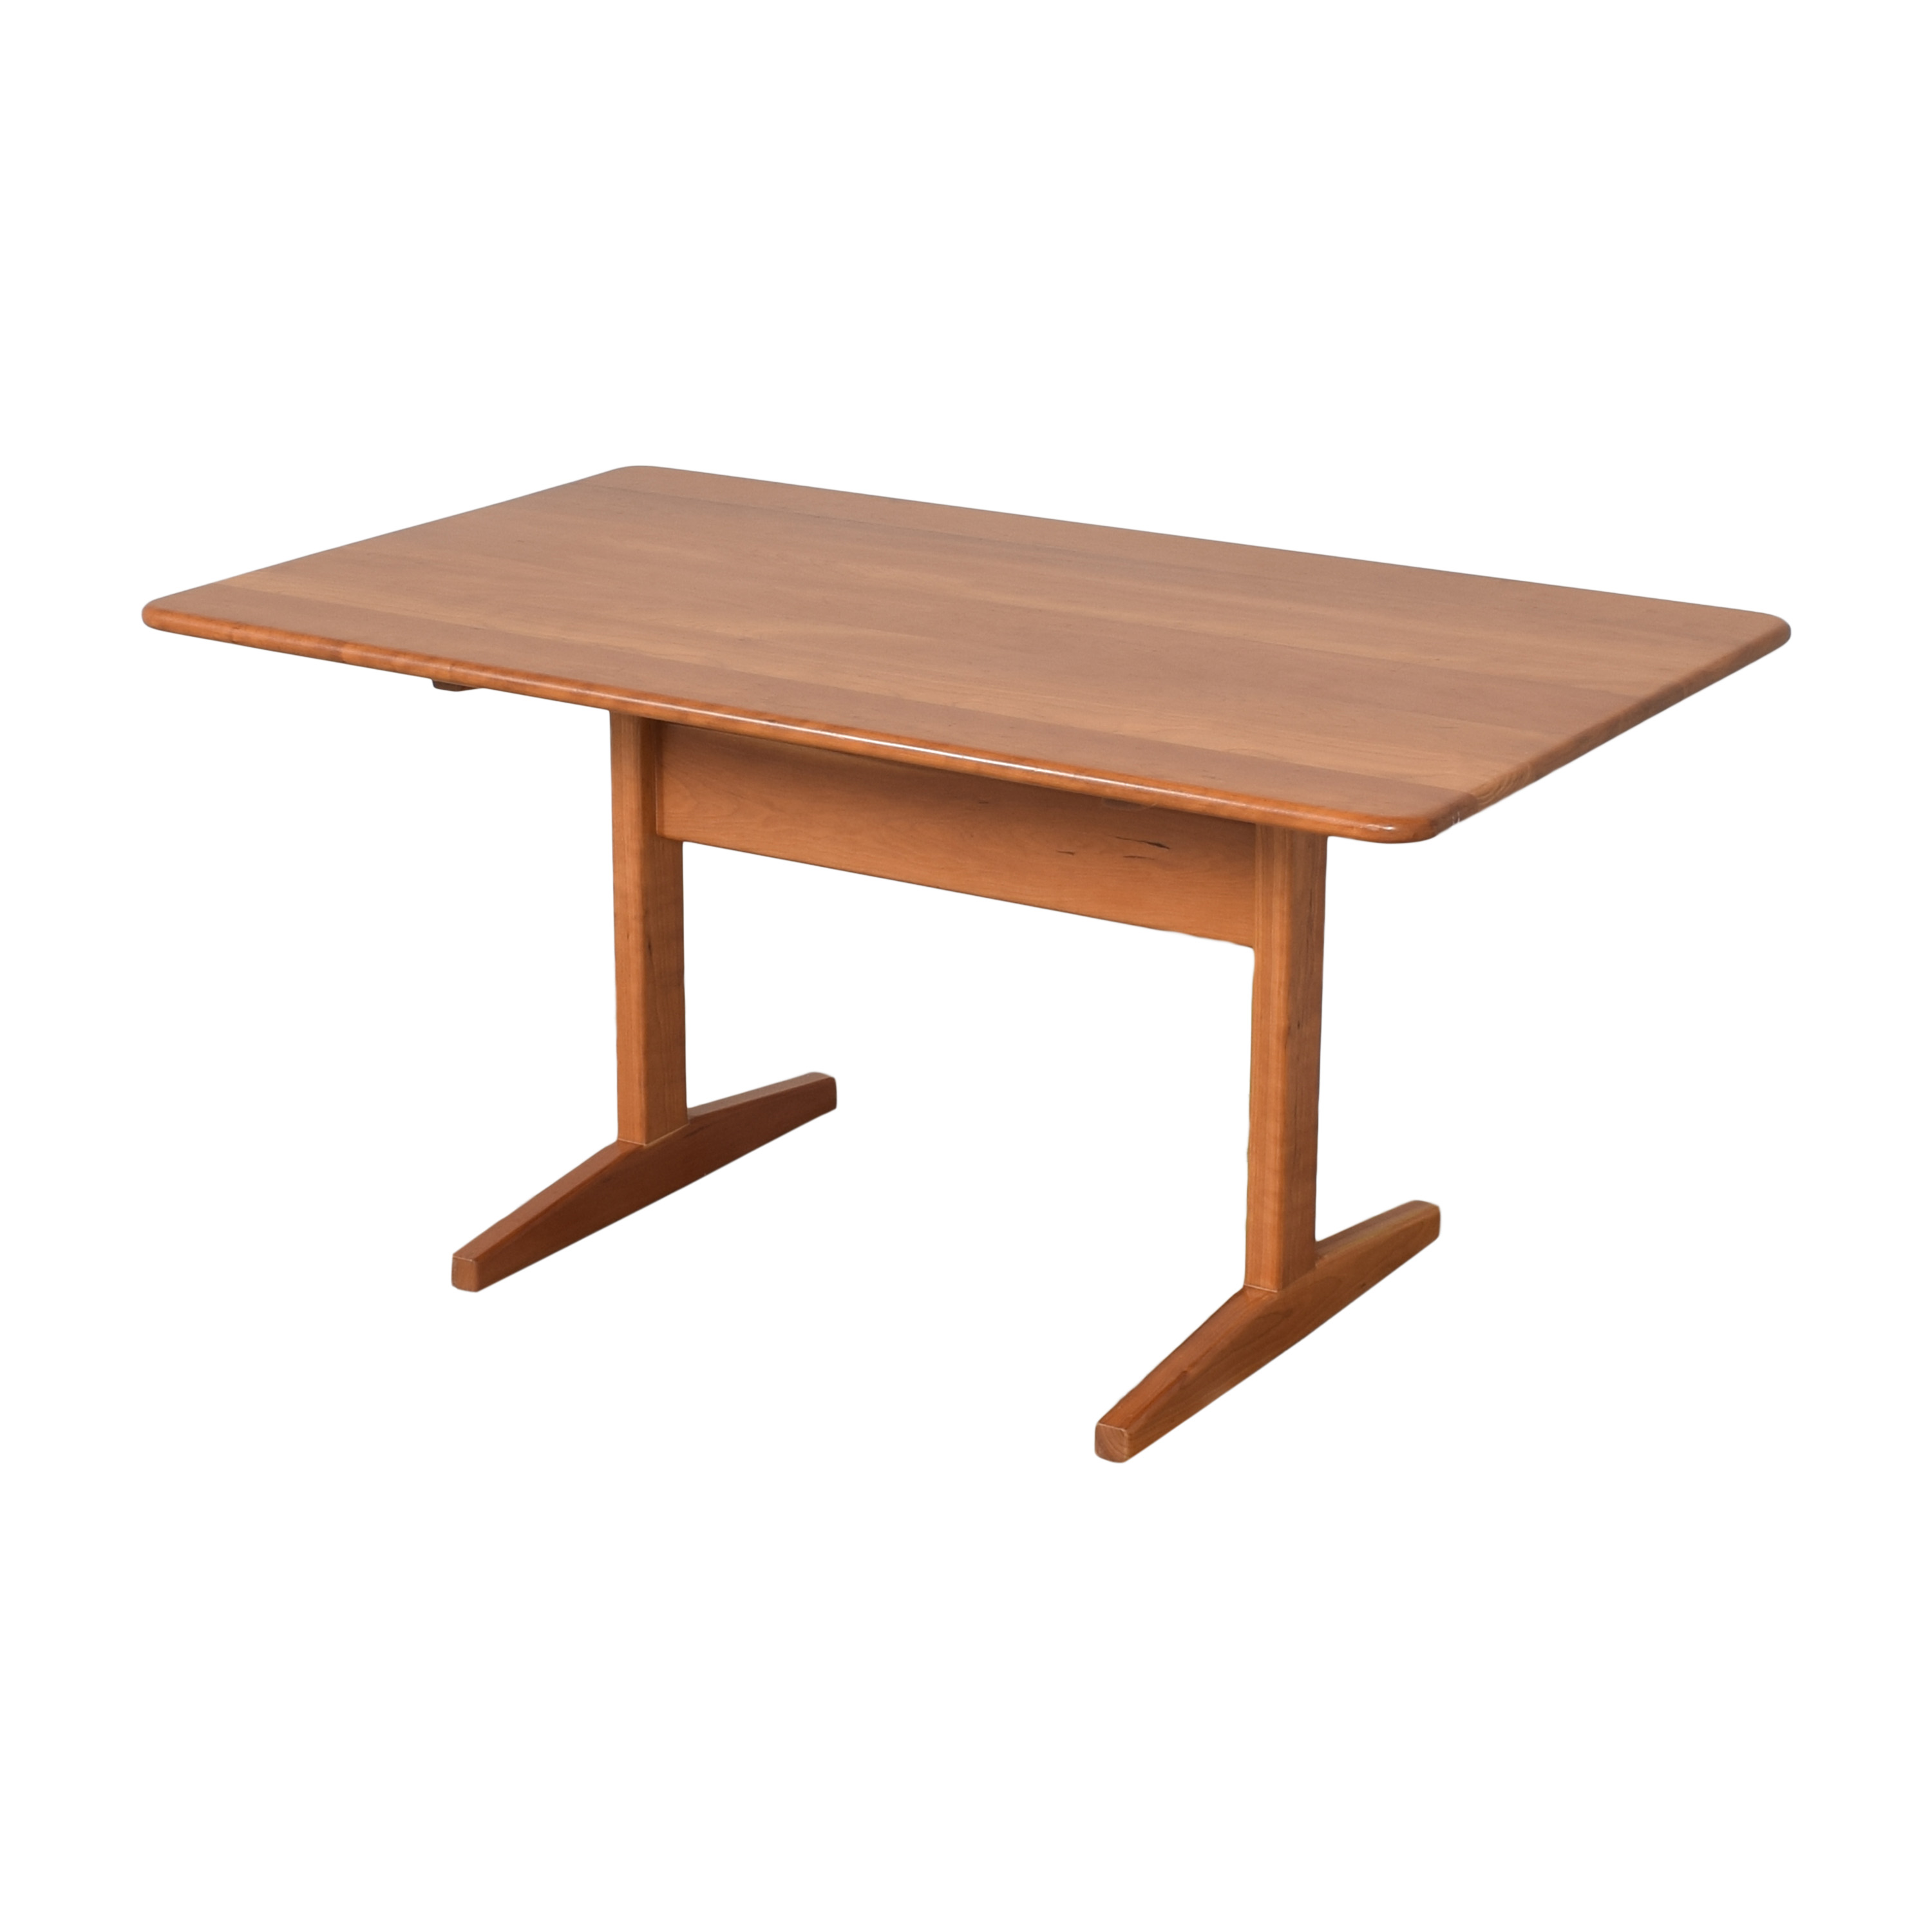 Pompanoosuc Mills Pompanoosuc Mills Trestle Dining Table for sale